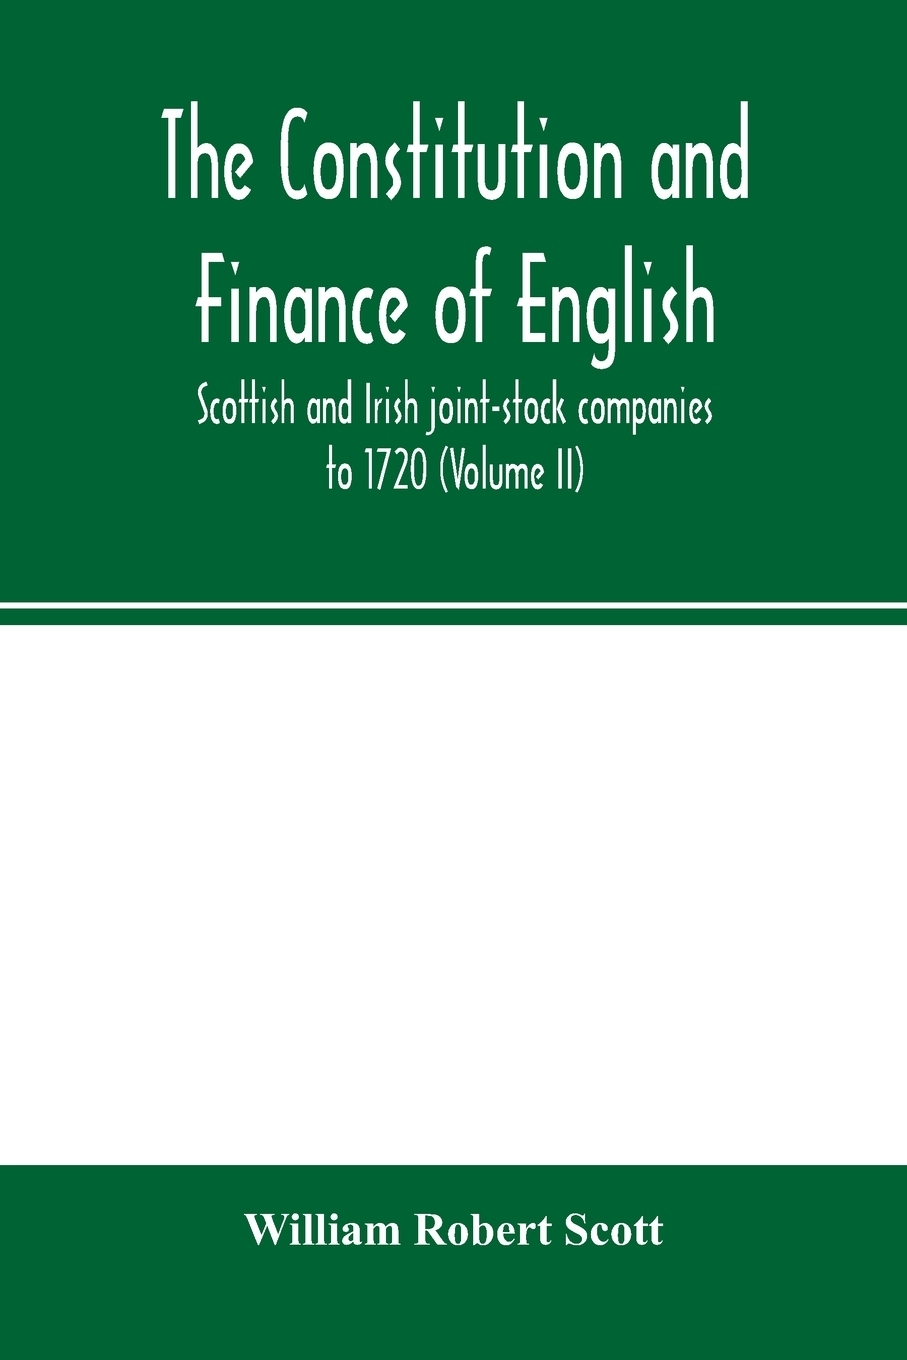 William Robert Scott. The constitution and finance of English, Scottish and Irish joint-stock companies to 1720 (Volume II) Companies for foreign Trade, Colonization, Fishing and Mining